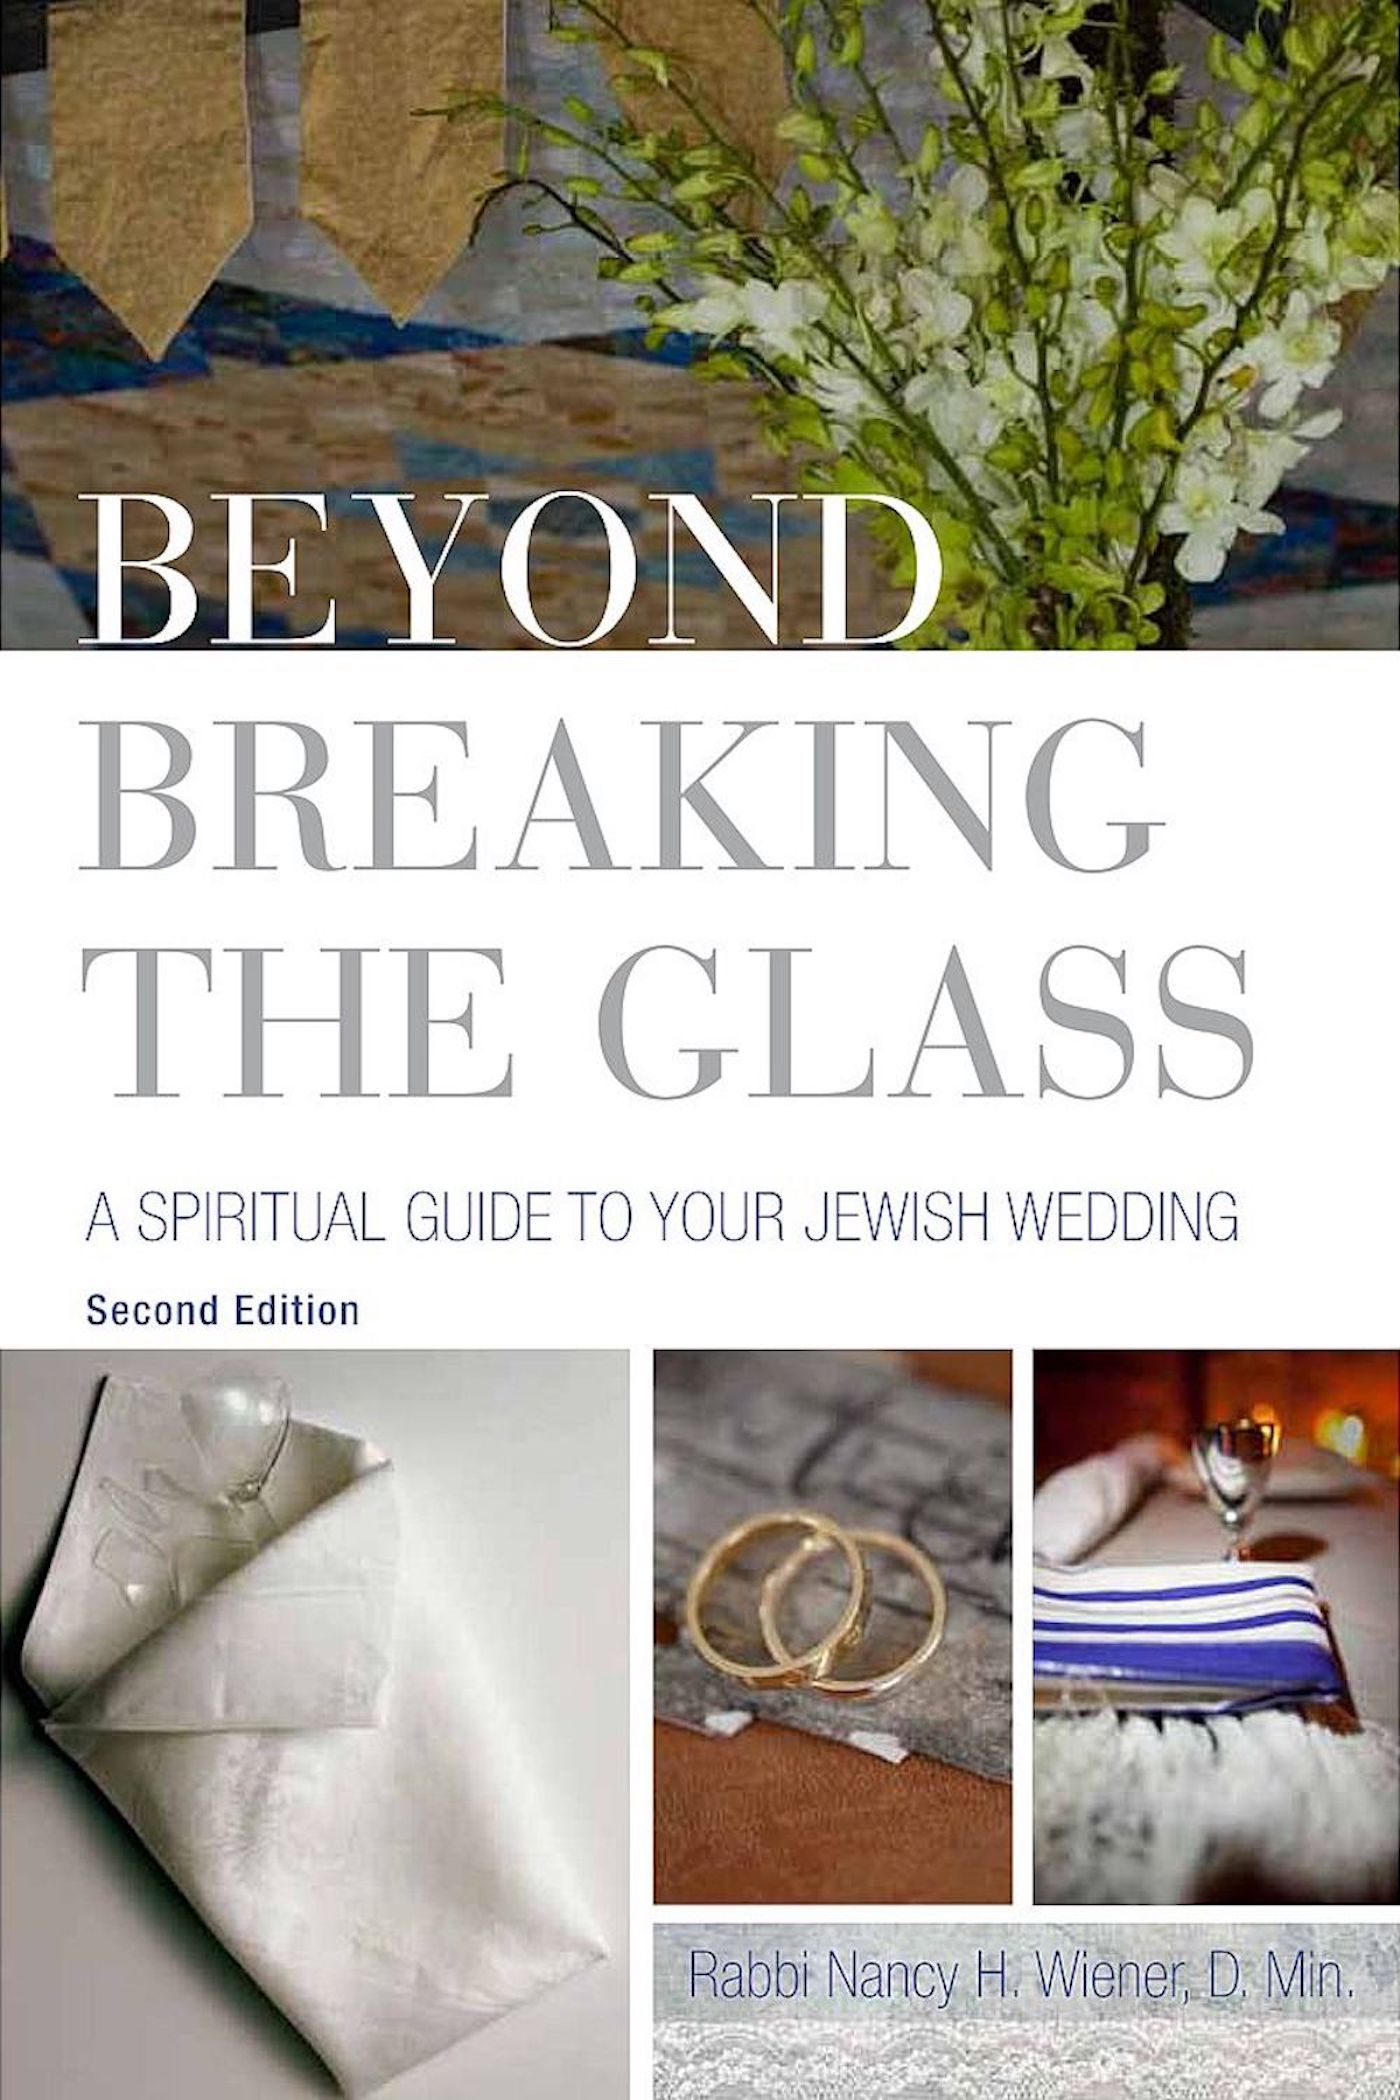 Beyond Breaking the Glass